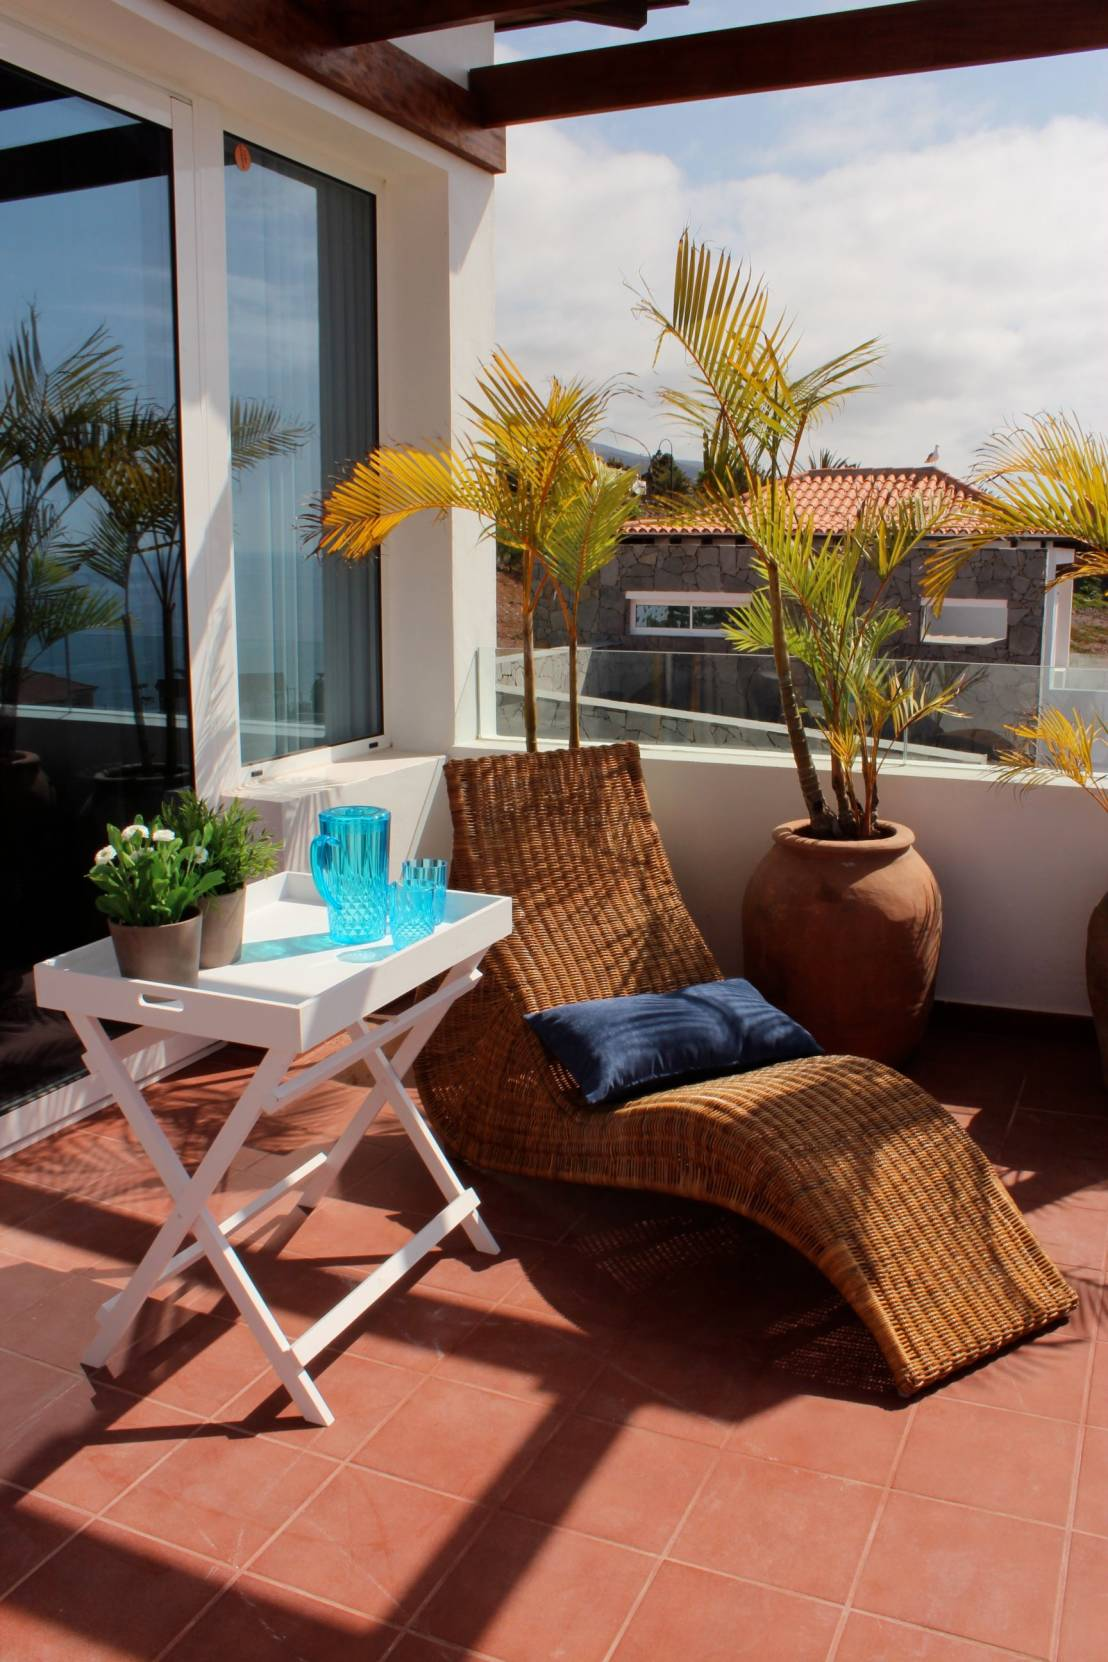 7 grandes ideas para balcones y terrazas peque as for Ideas para terrazas baratas